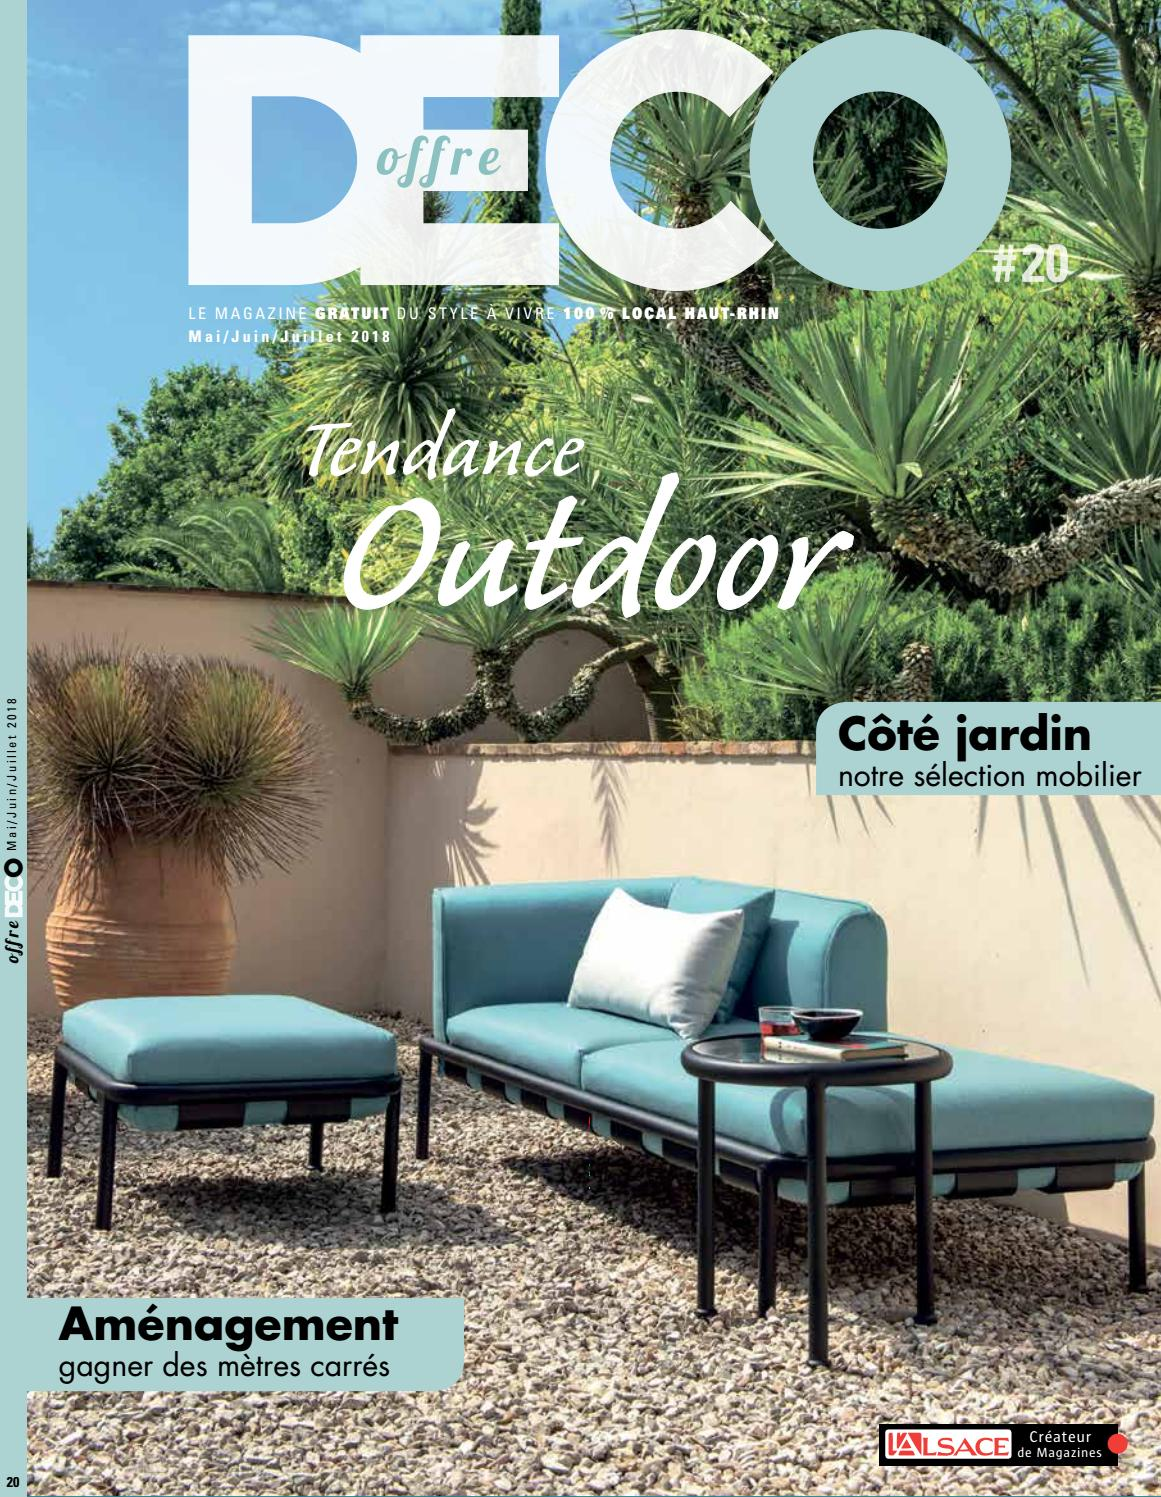 Offre Déco 68 #20 by jfleury67 - issuu